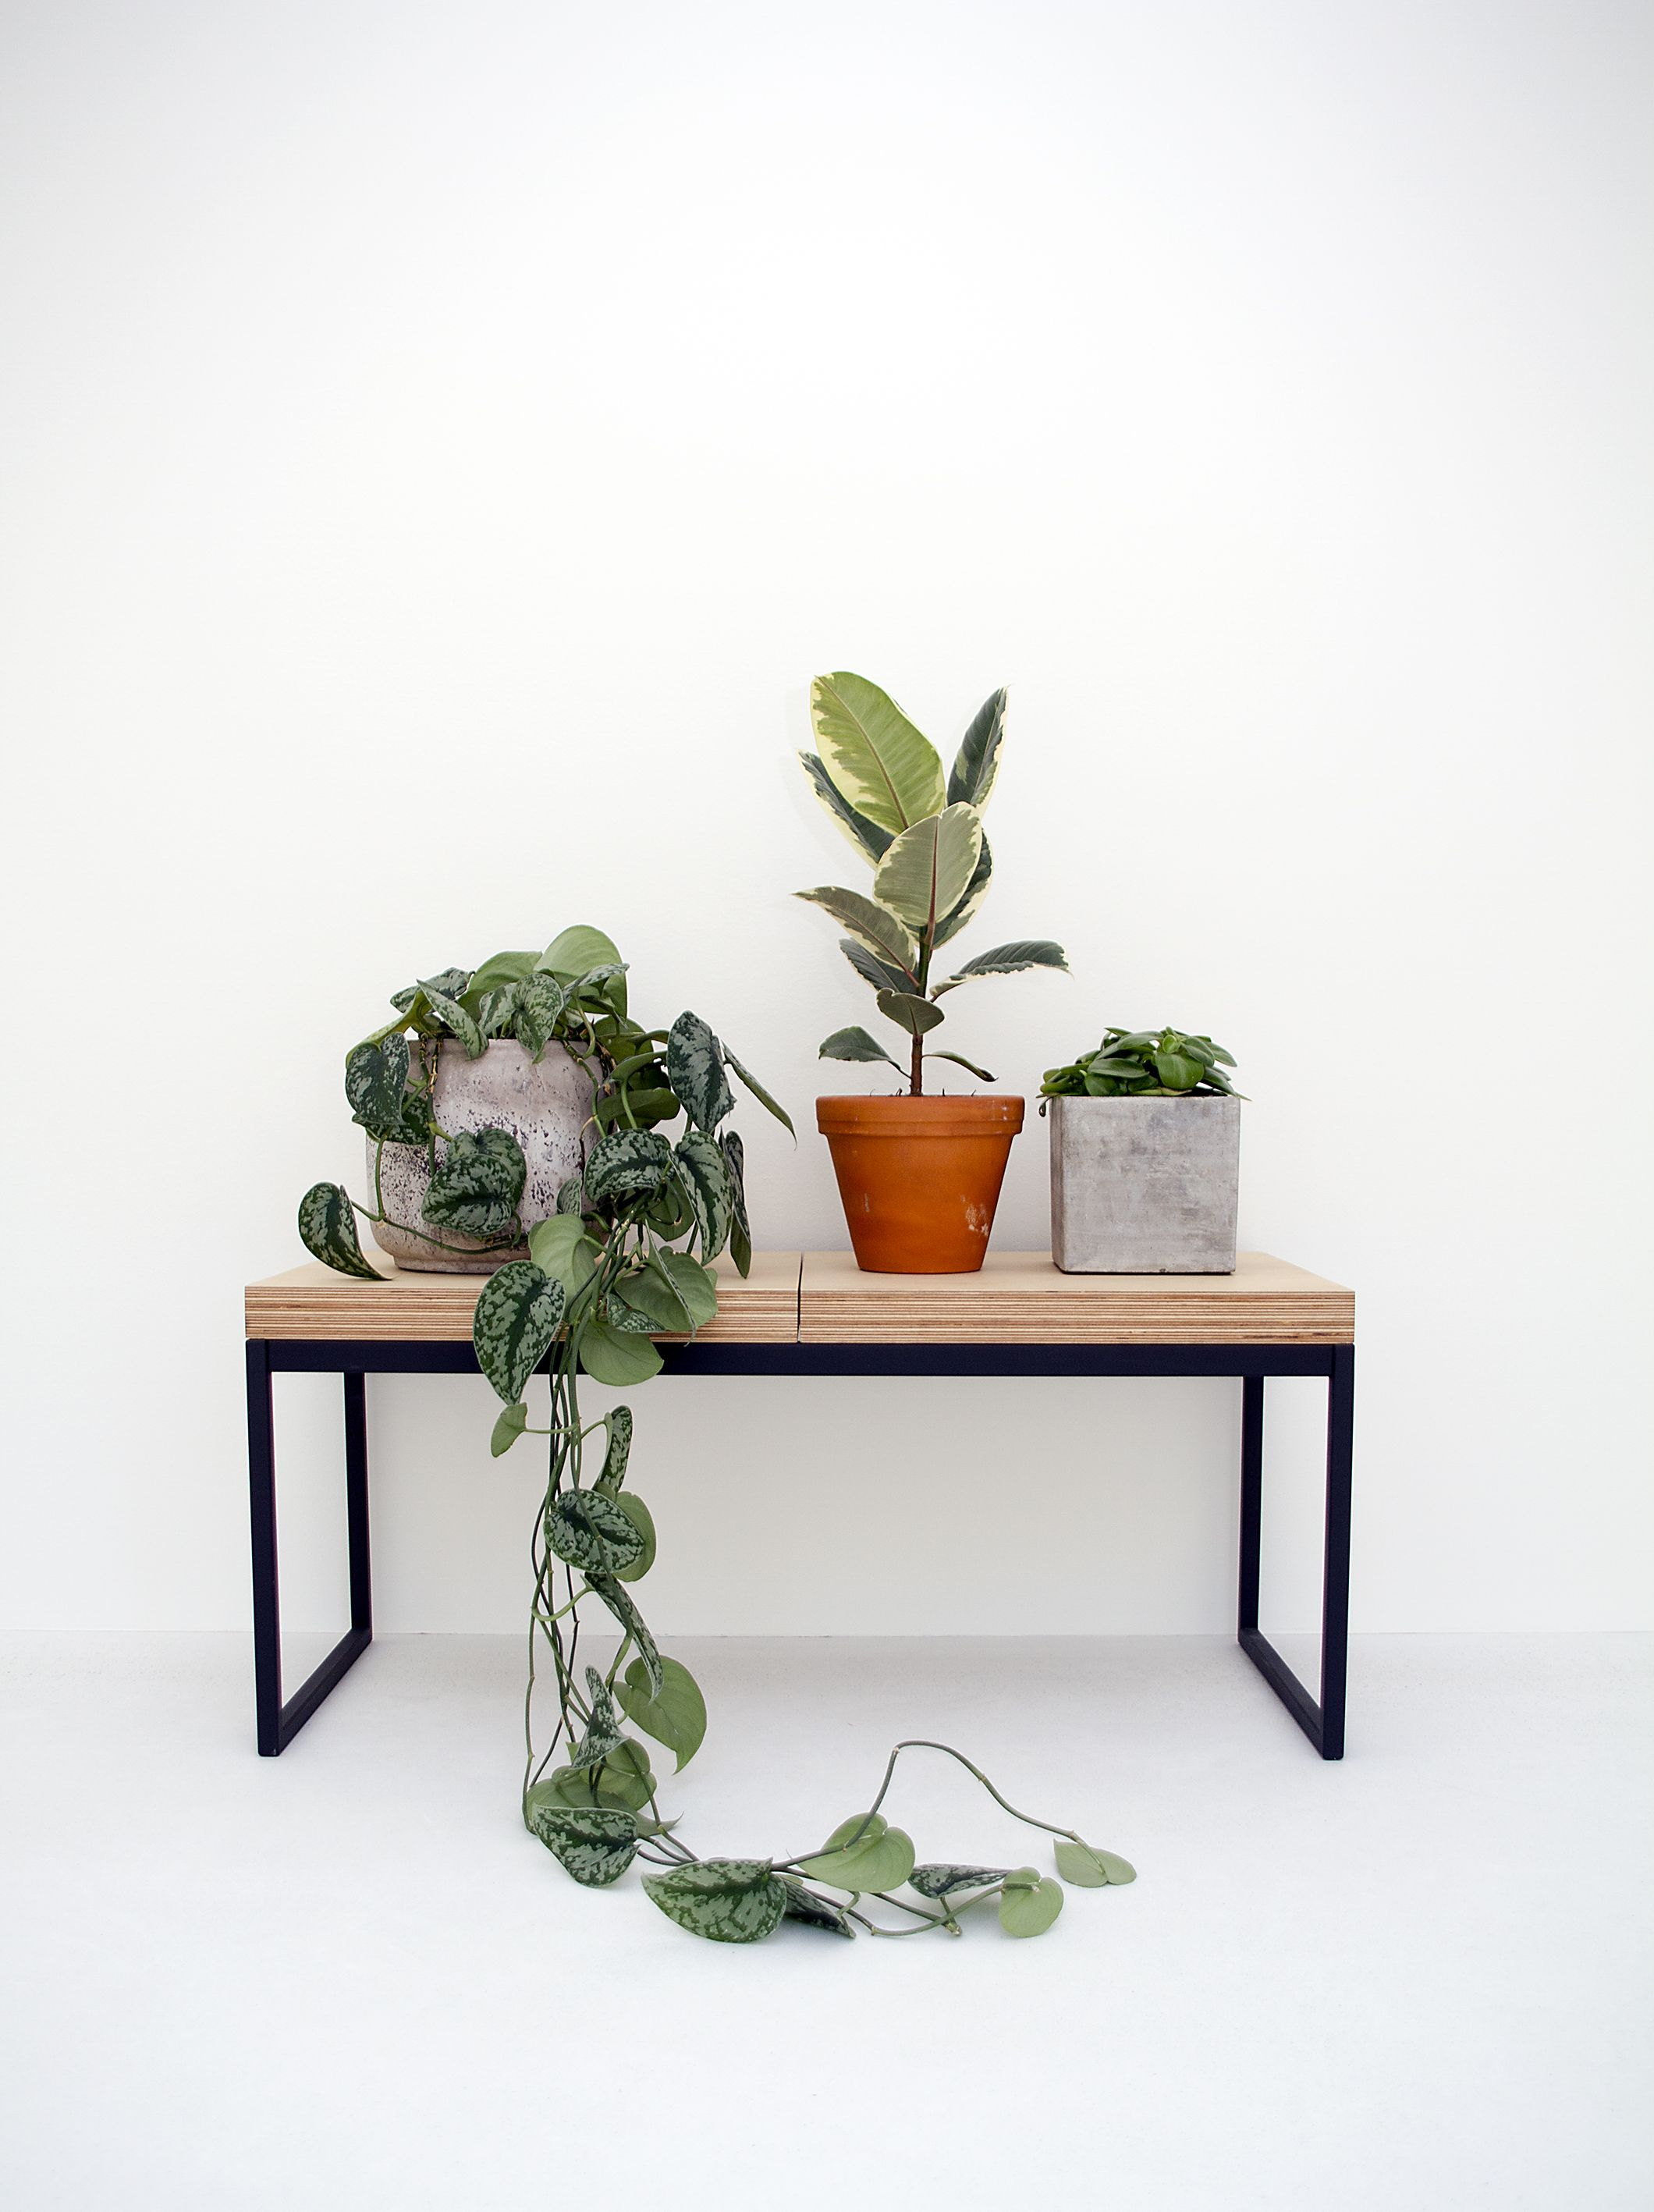 Plant Bench Indoor Indoor Plants And Potted House Plants On A Bench In A